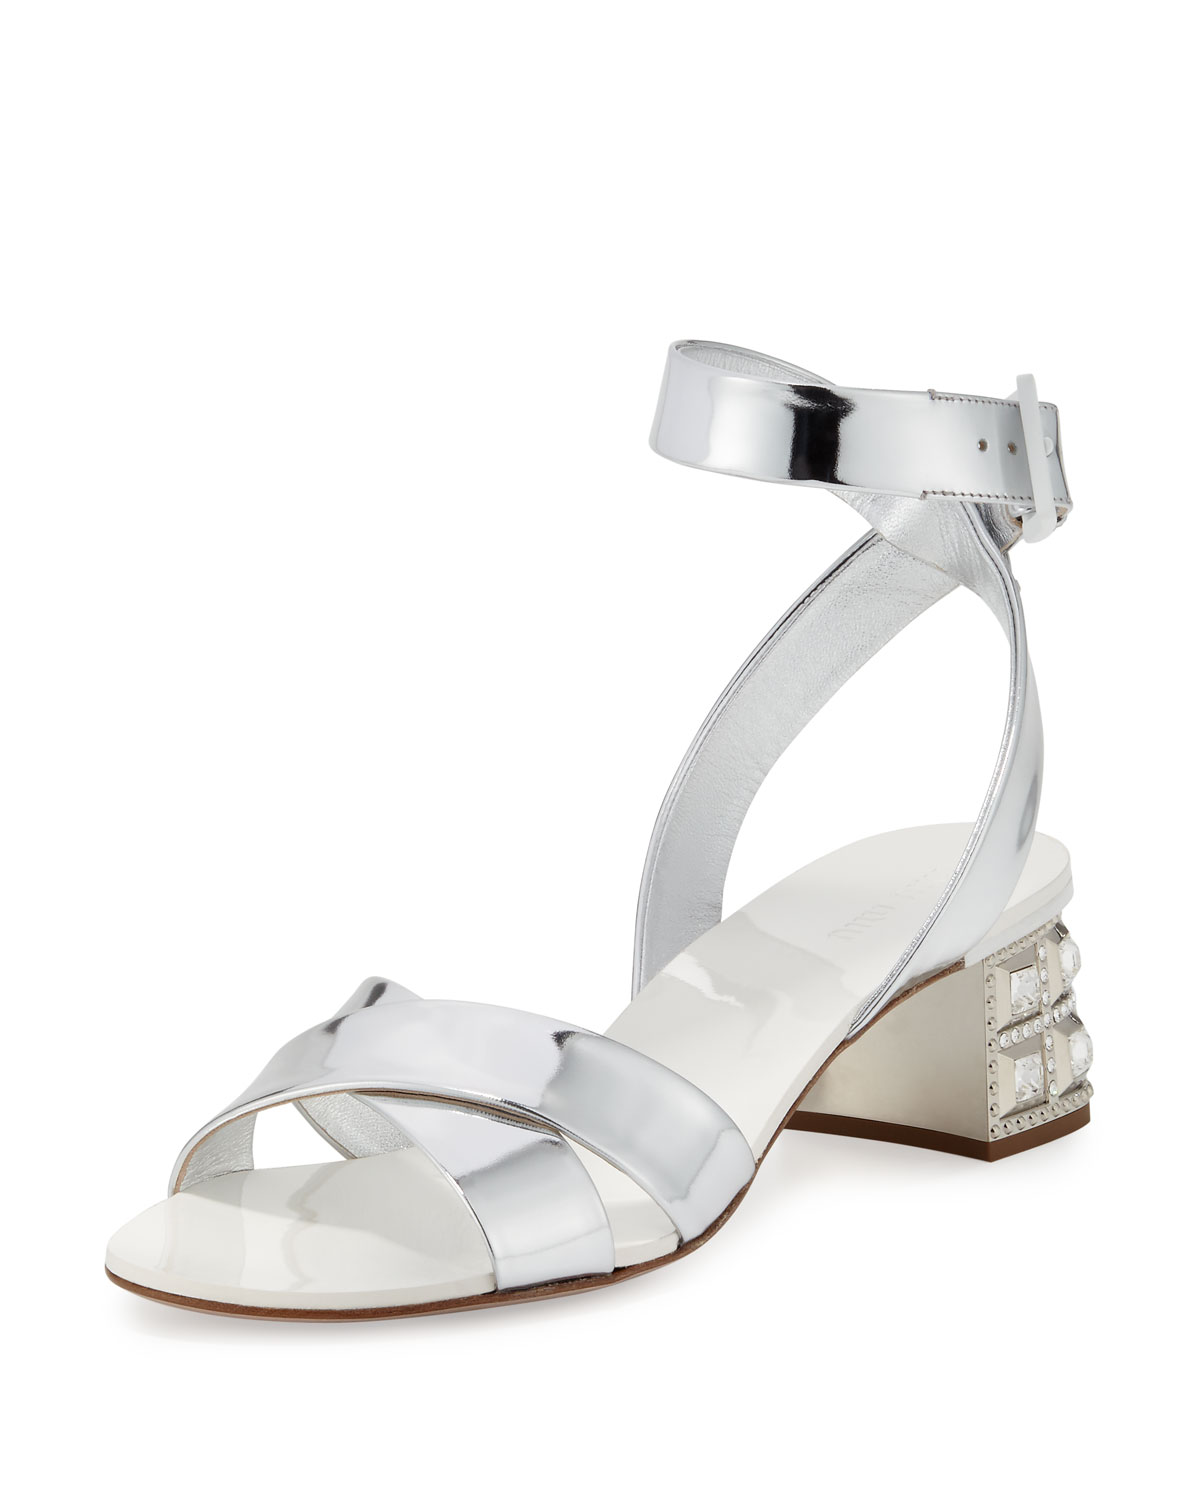 91bcb13a605 Miu Miu Metallic Leather Jewel-Heel Sandal